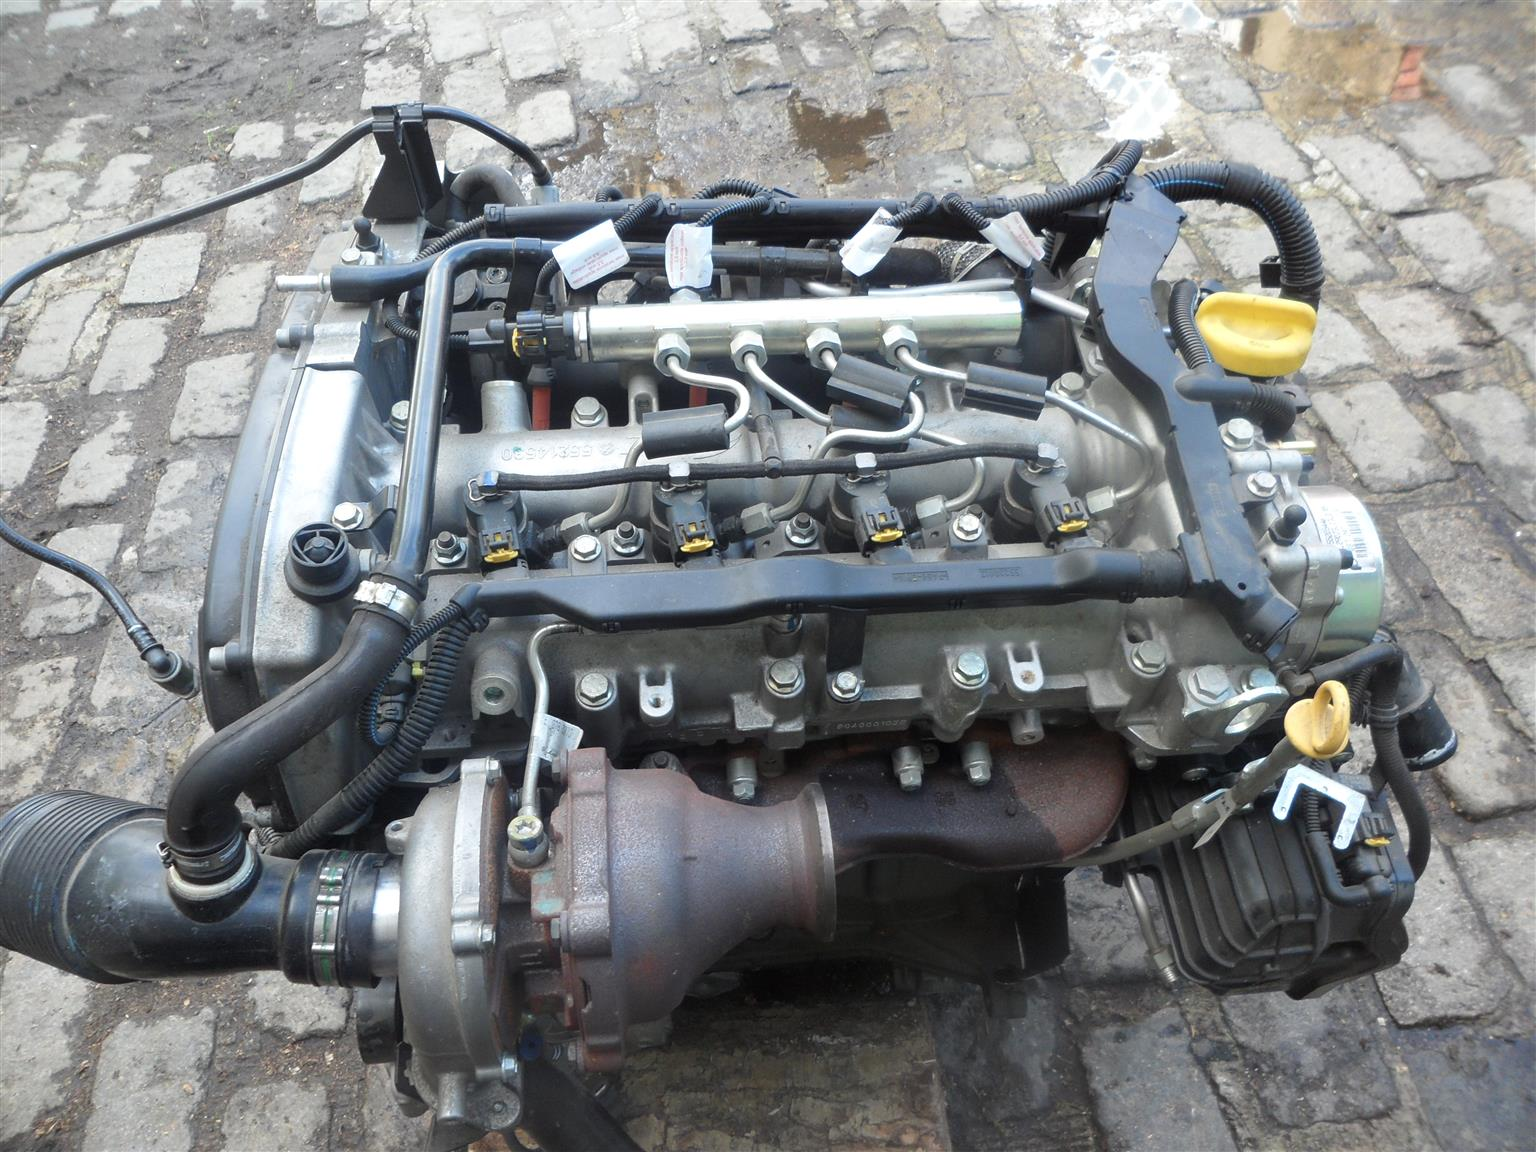 fiat/alfa 1.9 jtd engine for sale